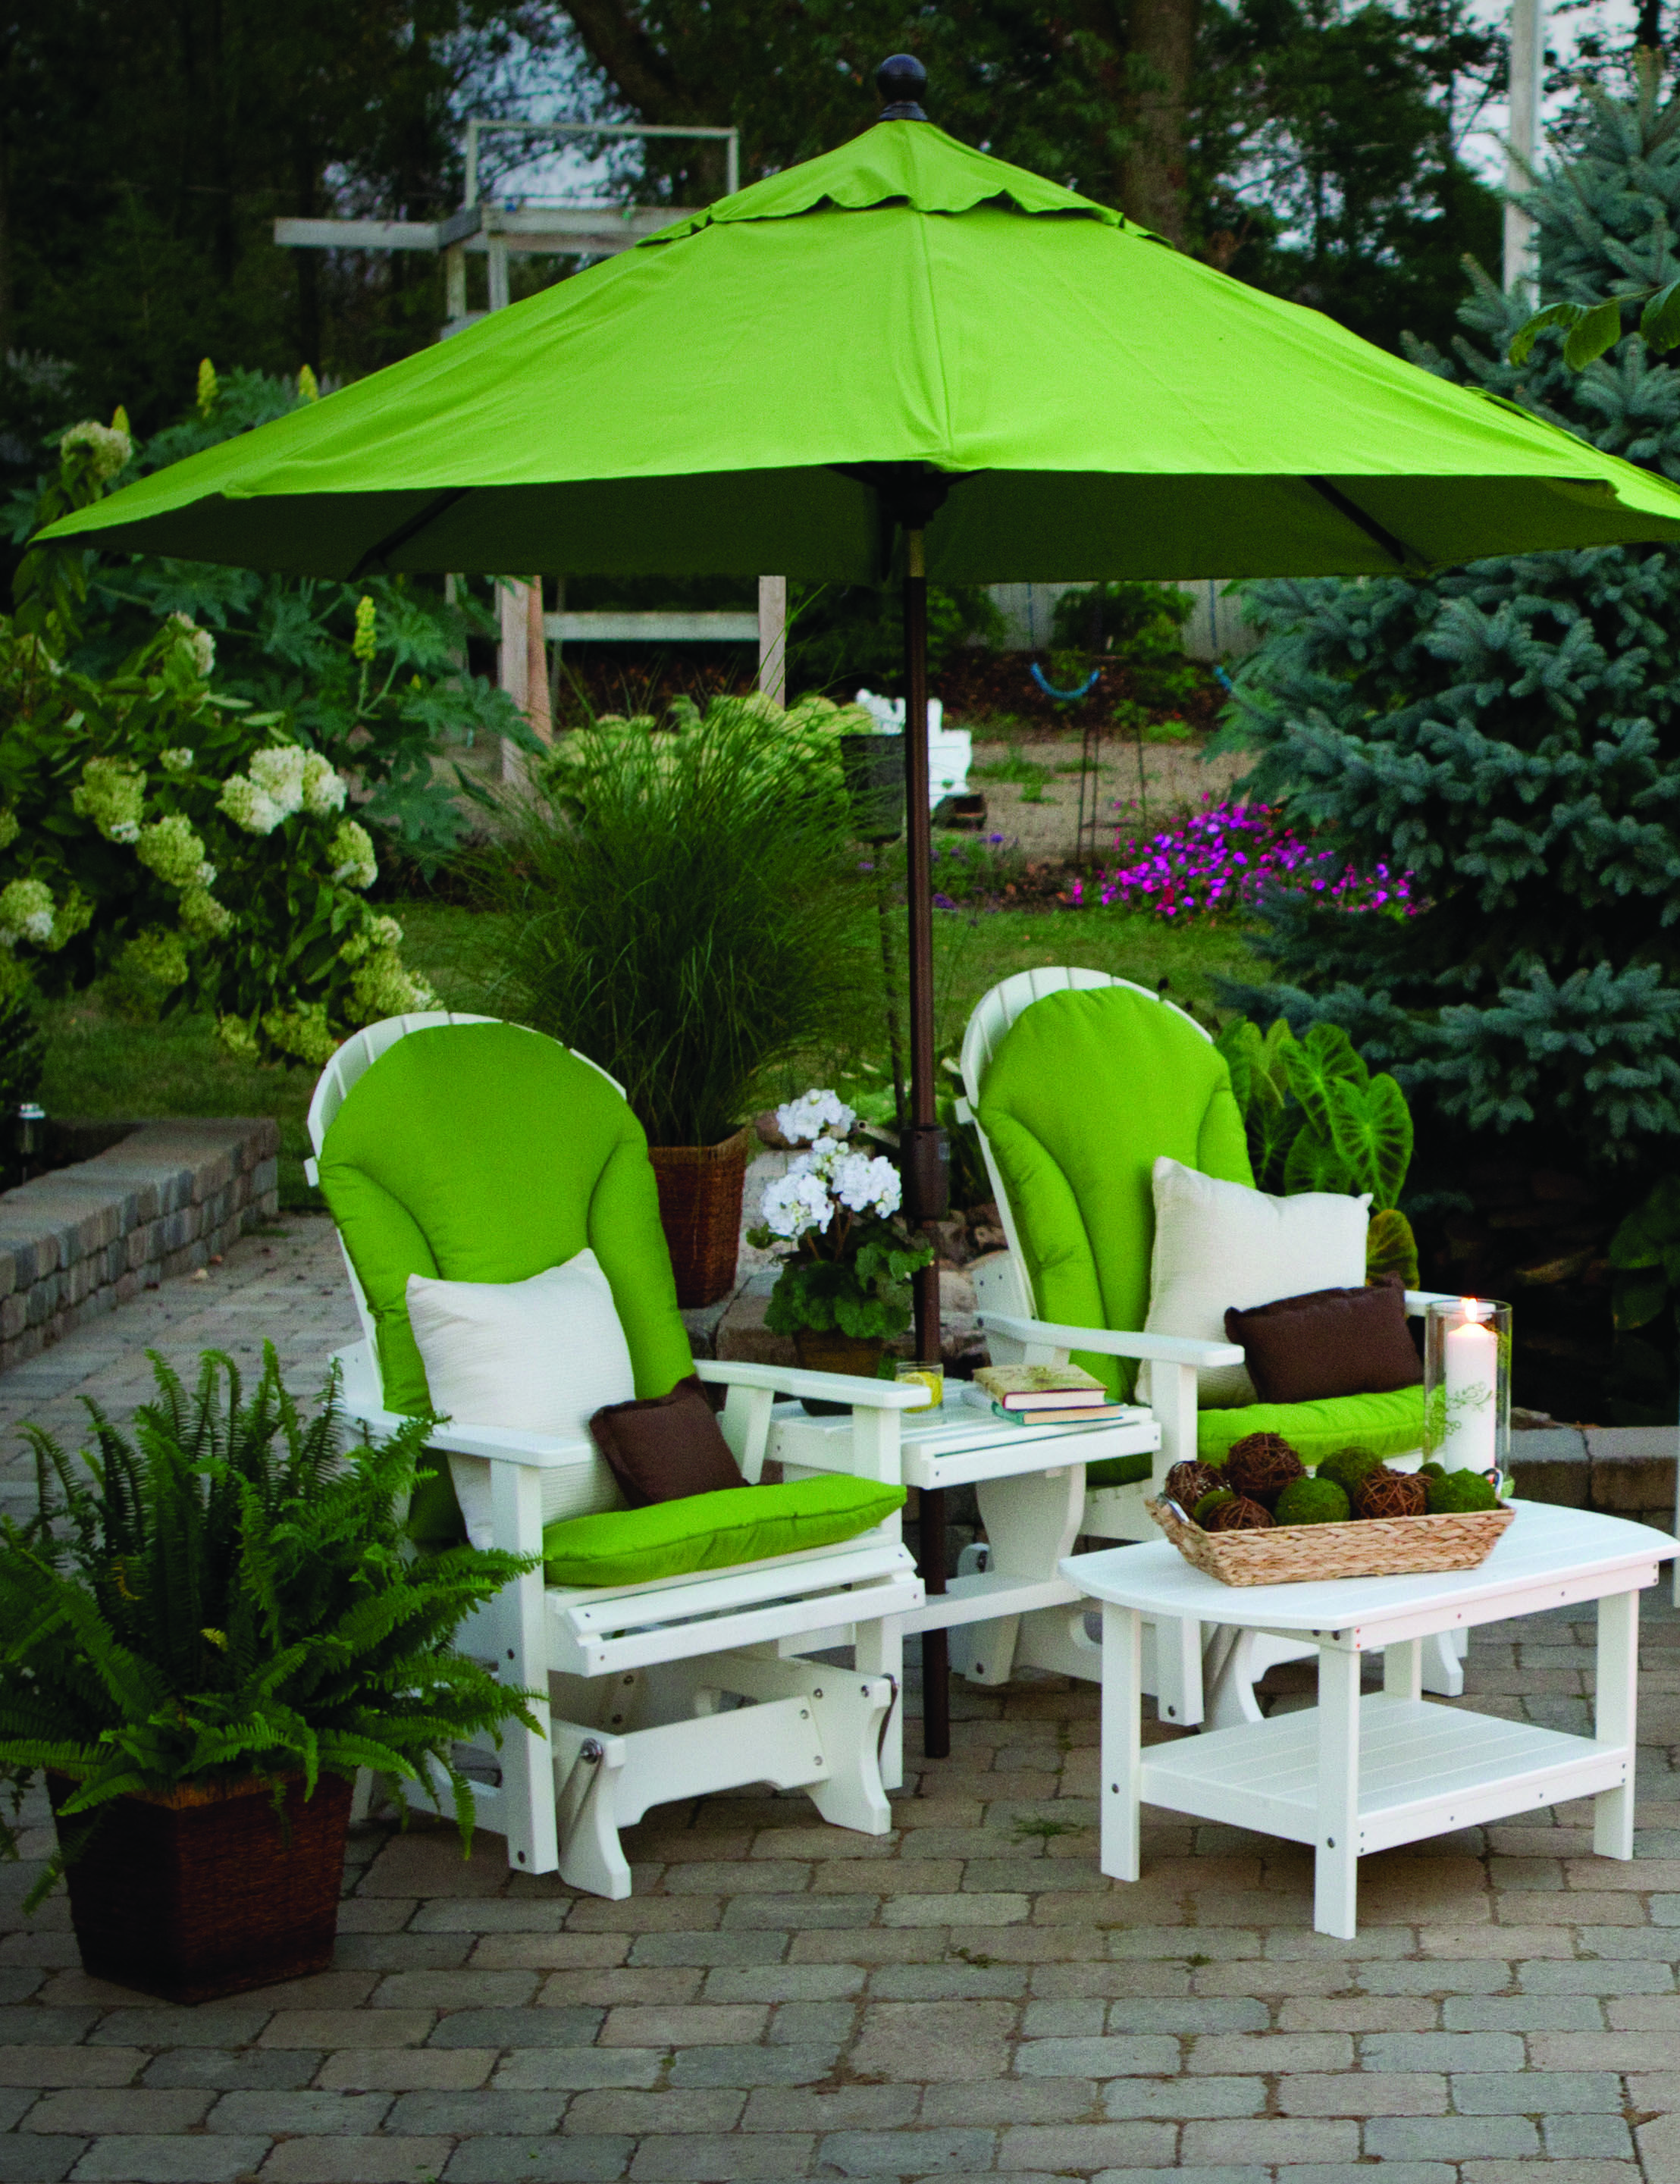 Berlin Gardens Gliders Are Pictured Here With Matching Tables. Add The Shade  Umbrella And Your